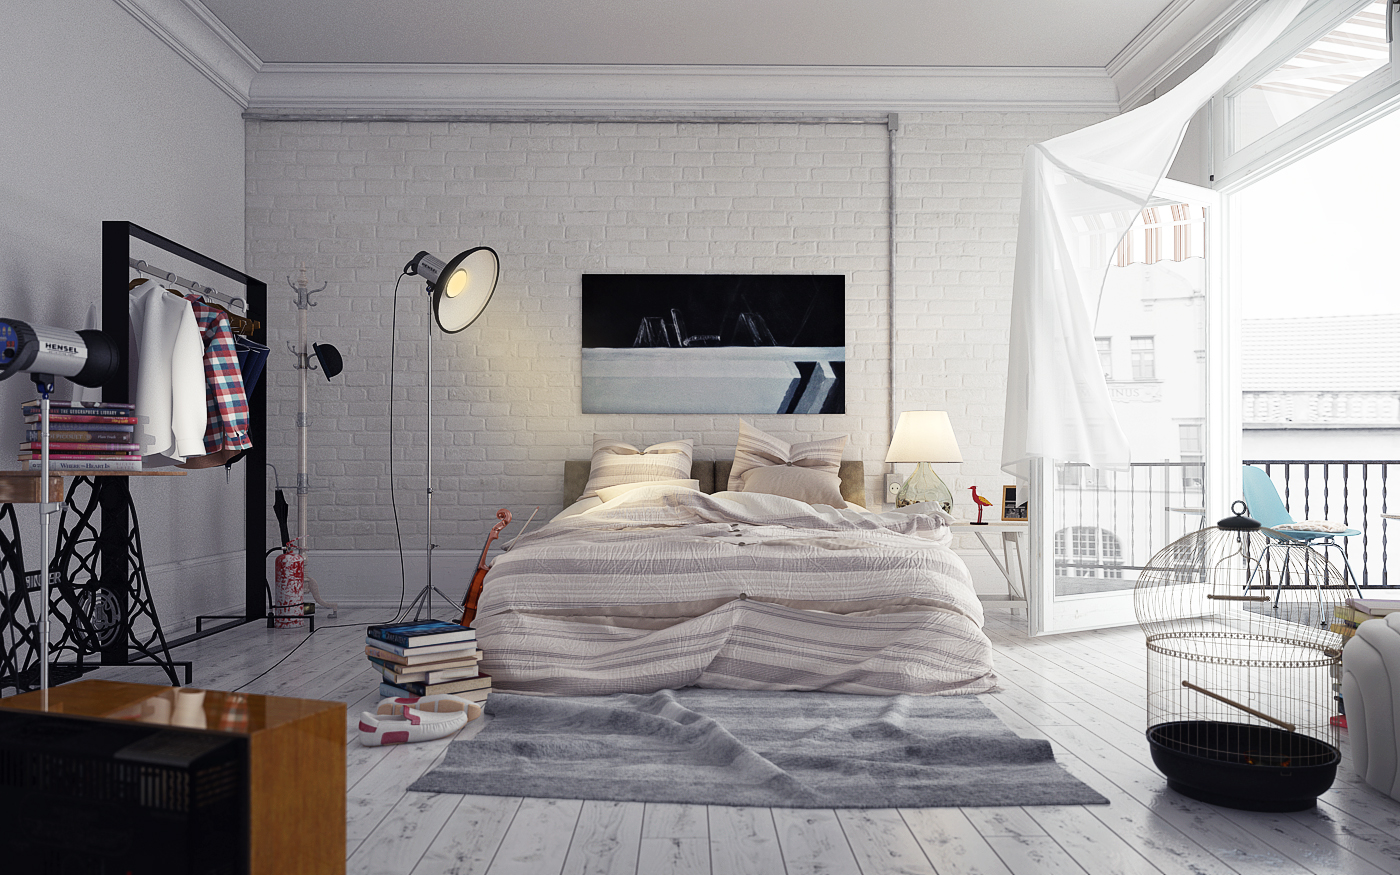 interior bedroom.02 by pitposum